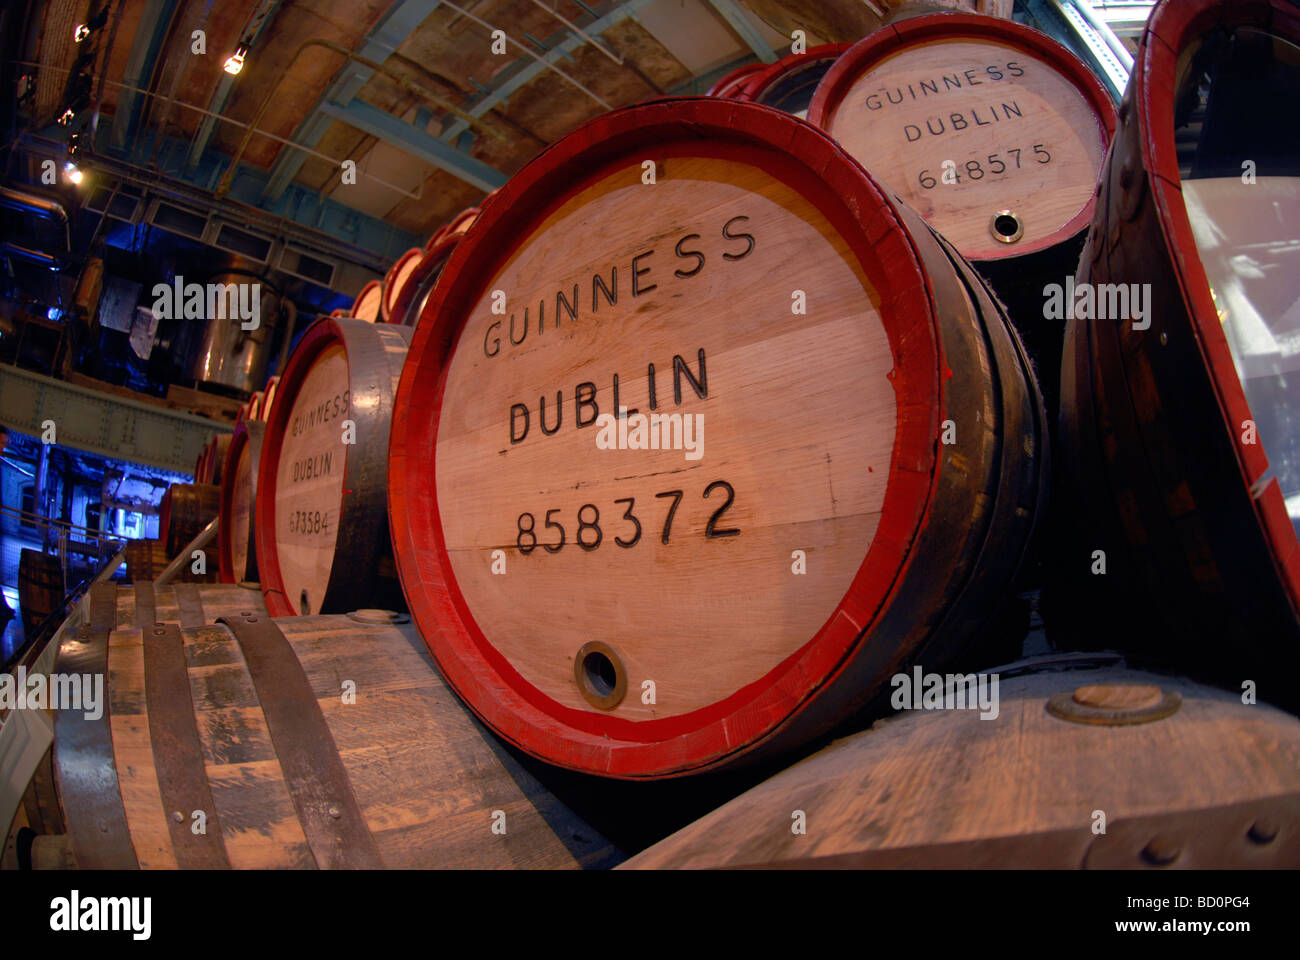 Barrels used for storing Guinness at the Storehouse visitors centre at the St James Gate Guinness brewery in Dublin - Stock Image